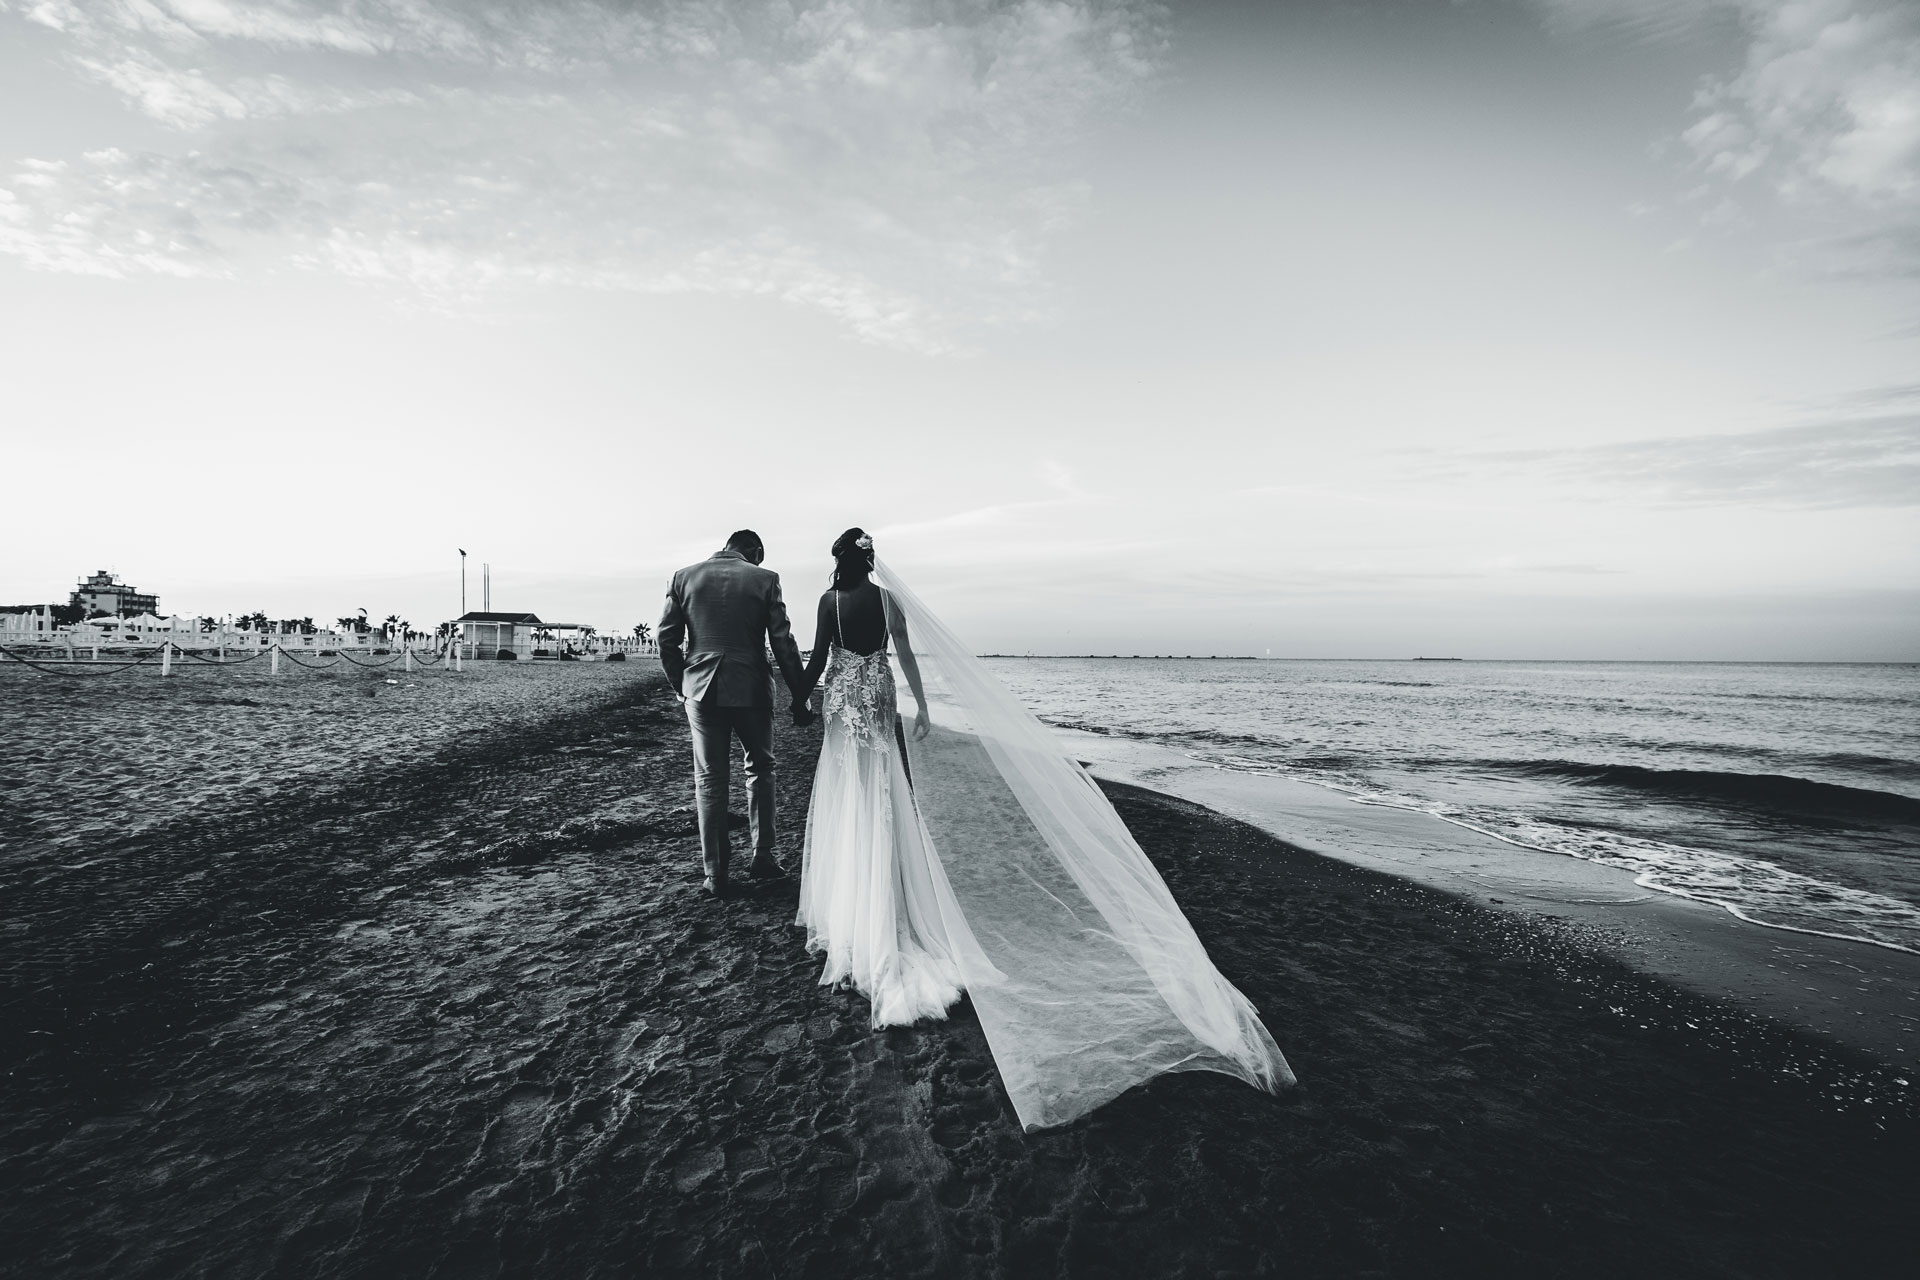 Venetian Lagoon, Chioggia - Italy Wedding Image in BW | the storm had passed and their marriage has begun in earnest